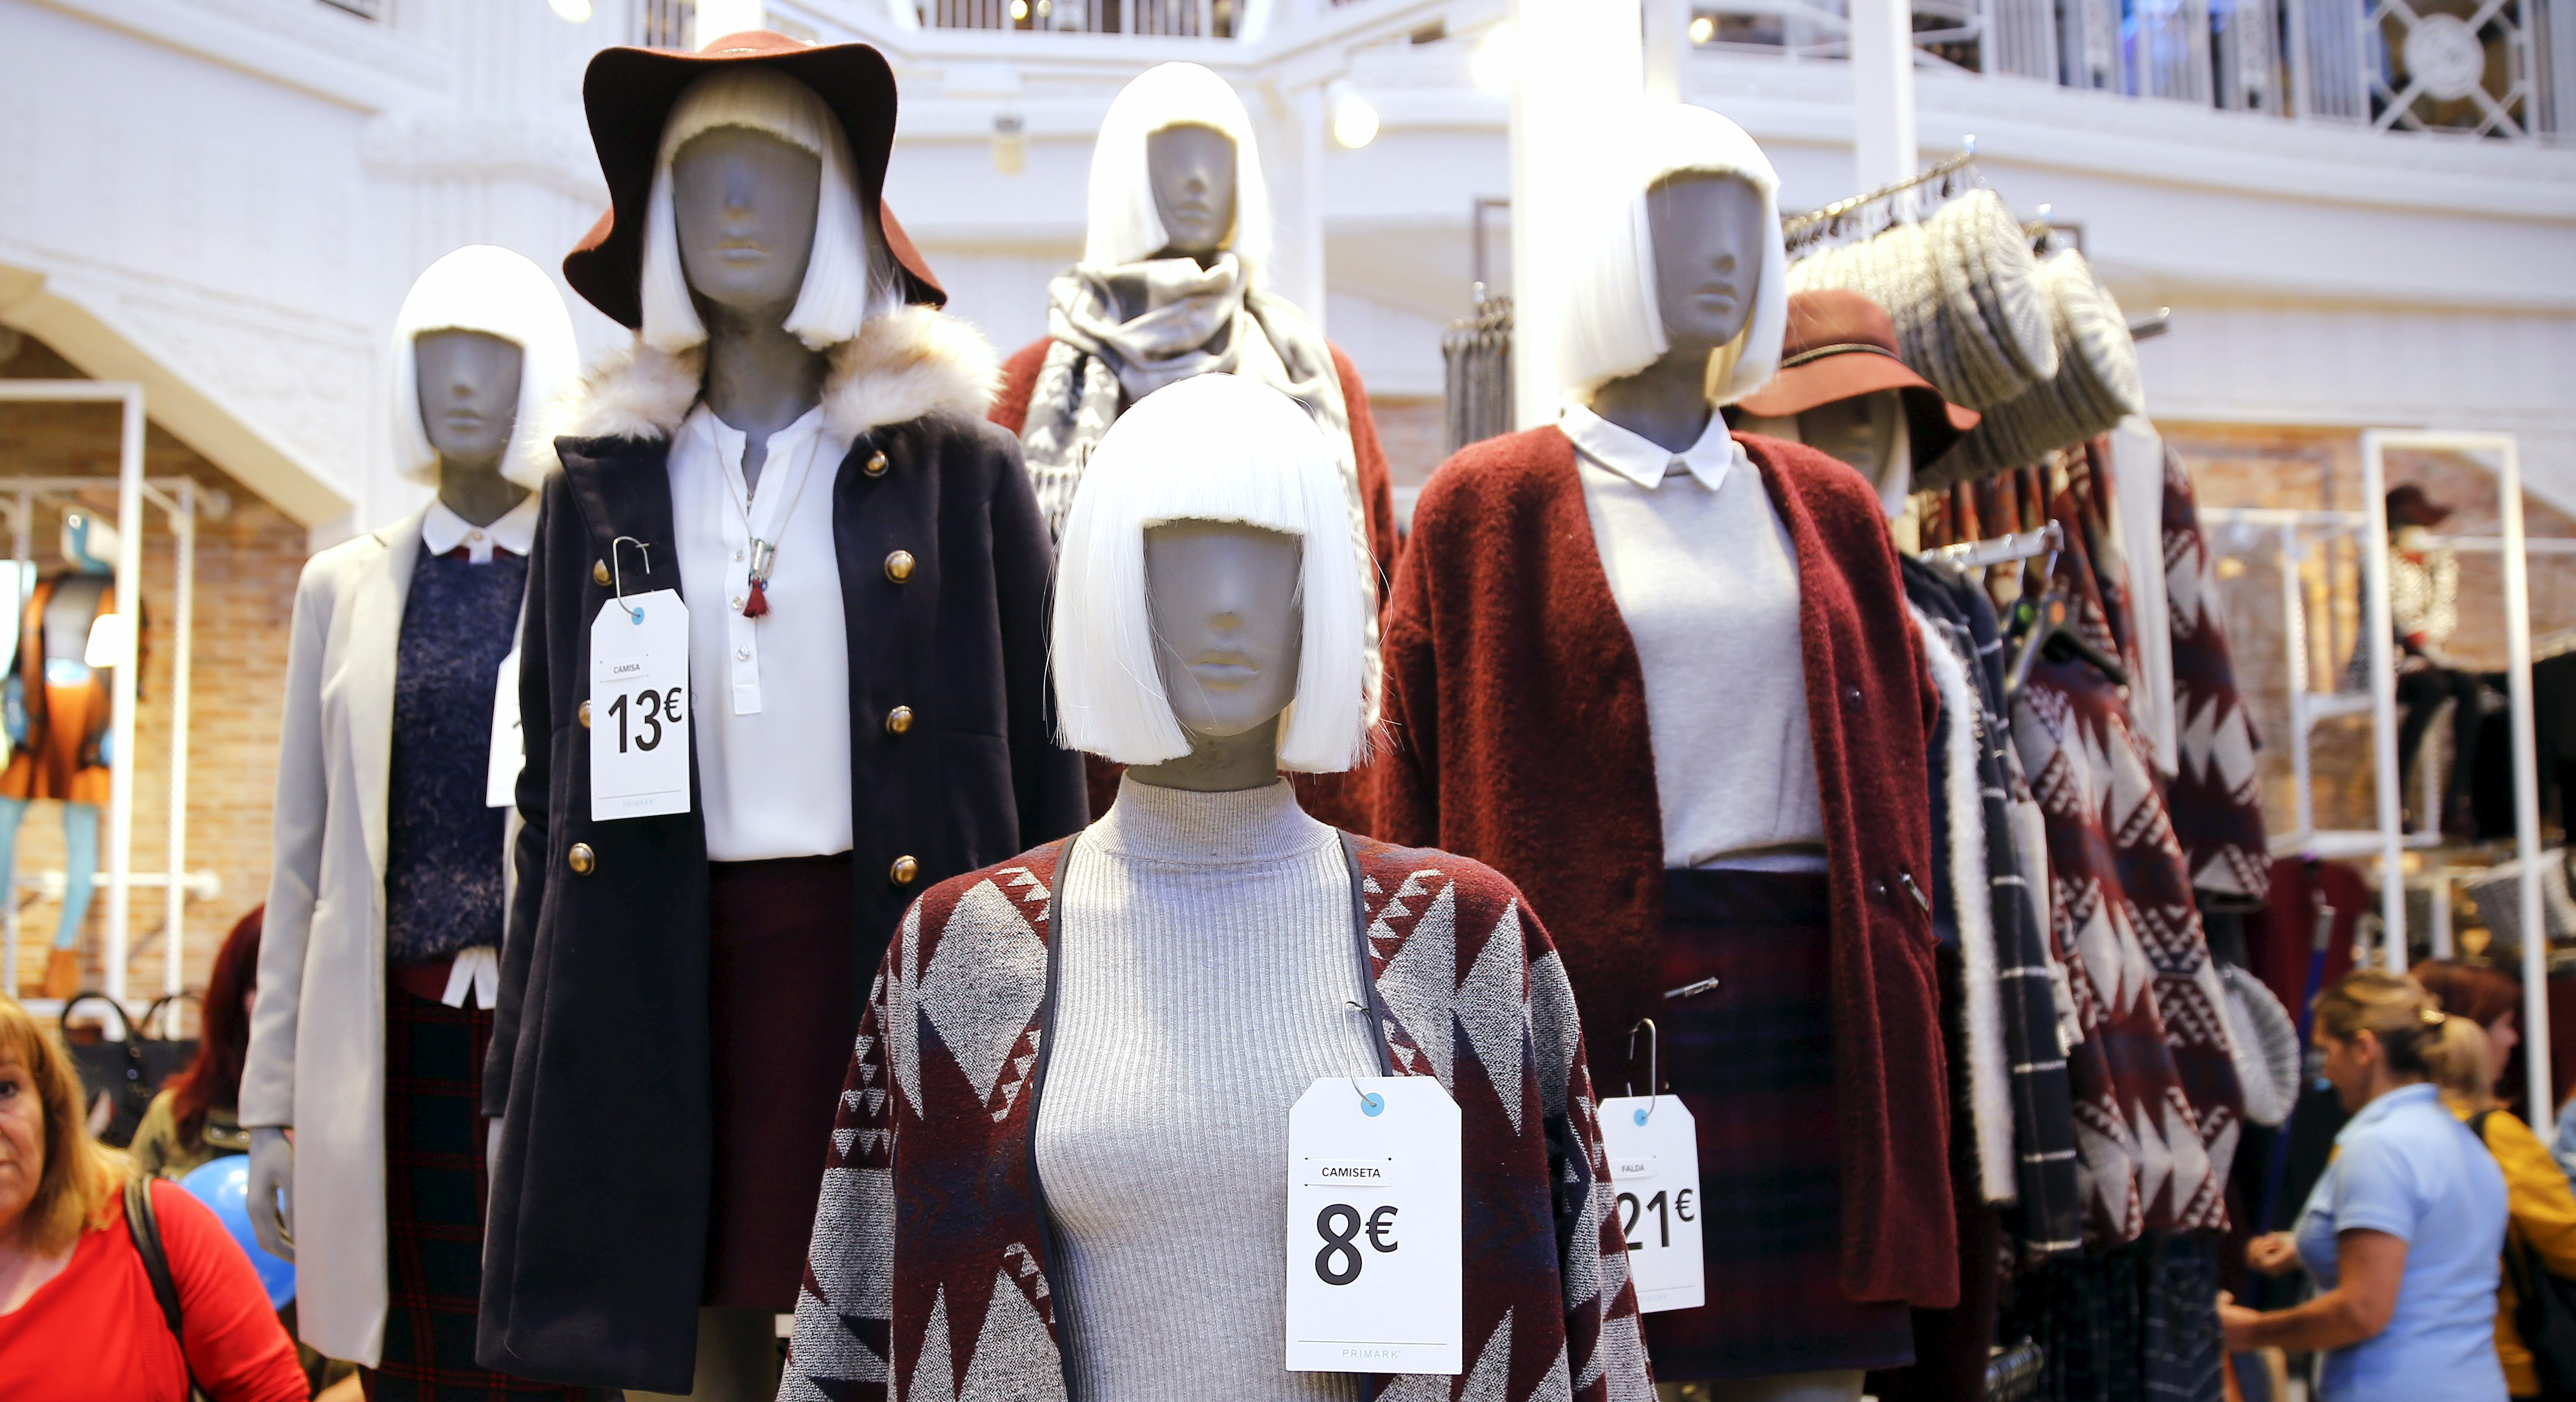 """fast fashion The phrase """"fast fashion"""" refers to low-cost clothing collections that mimic current luxury fashion trends fast fashion helps sate deeply held desires among young consumers in the industrialized world for luxury fashion, even as it embodies unsustainability."""